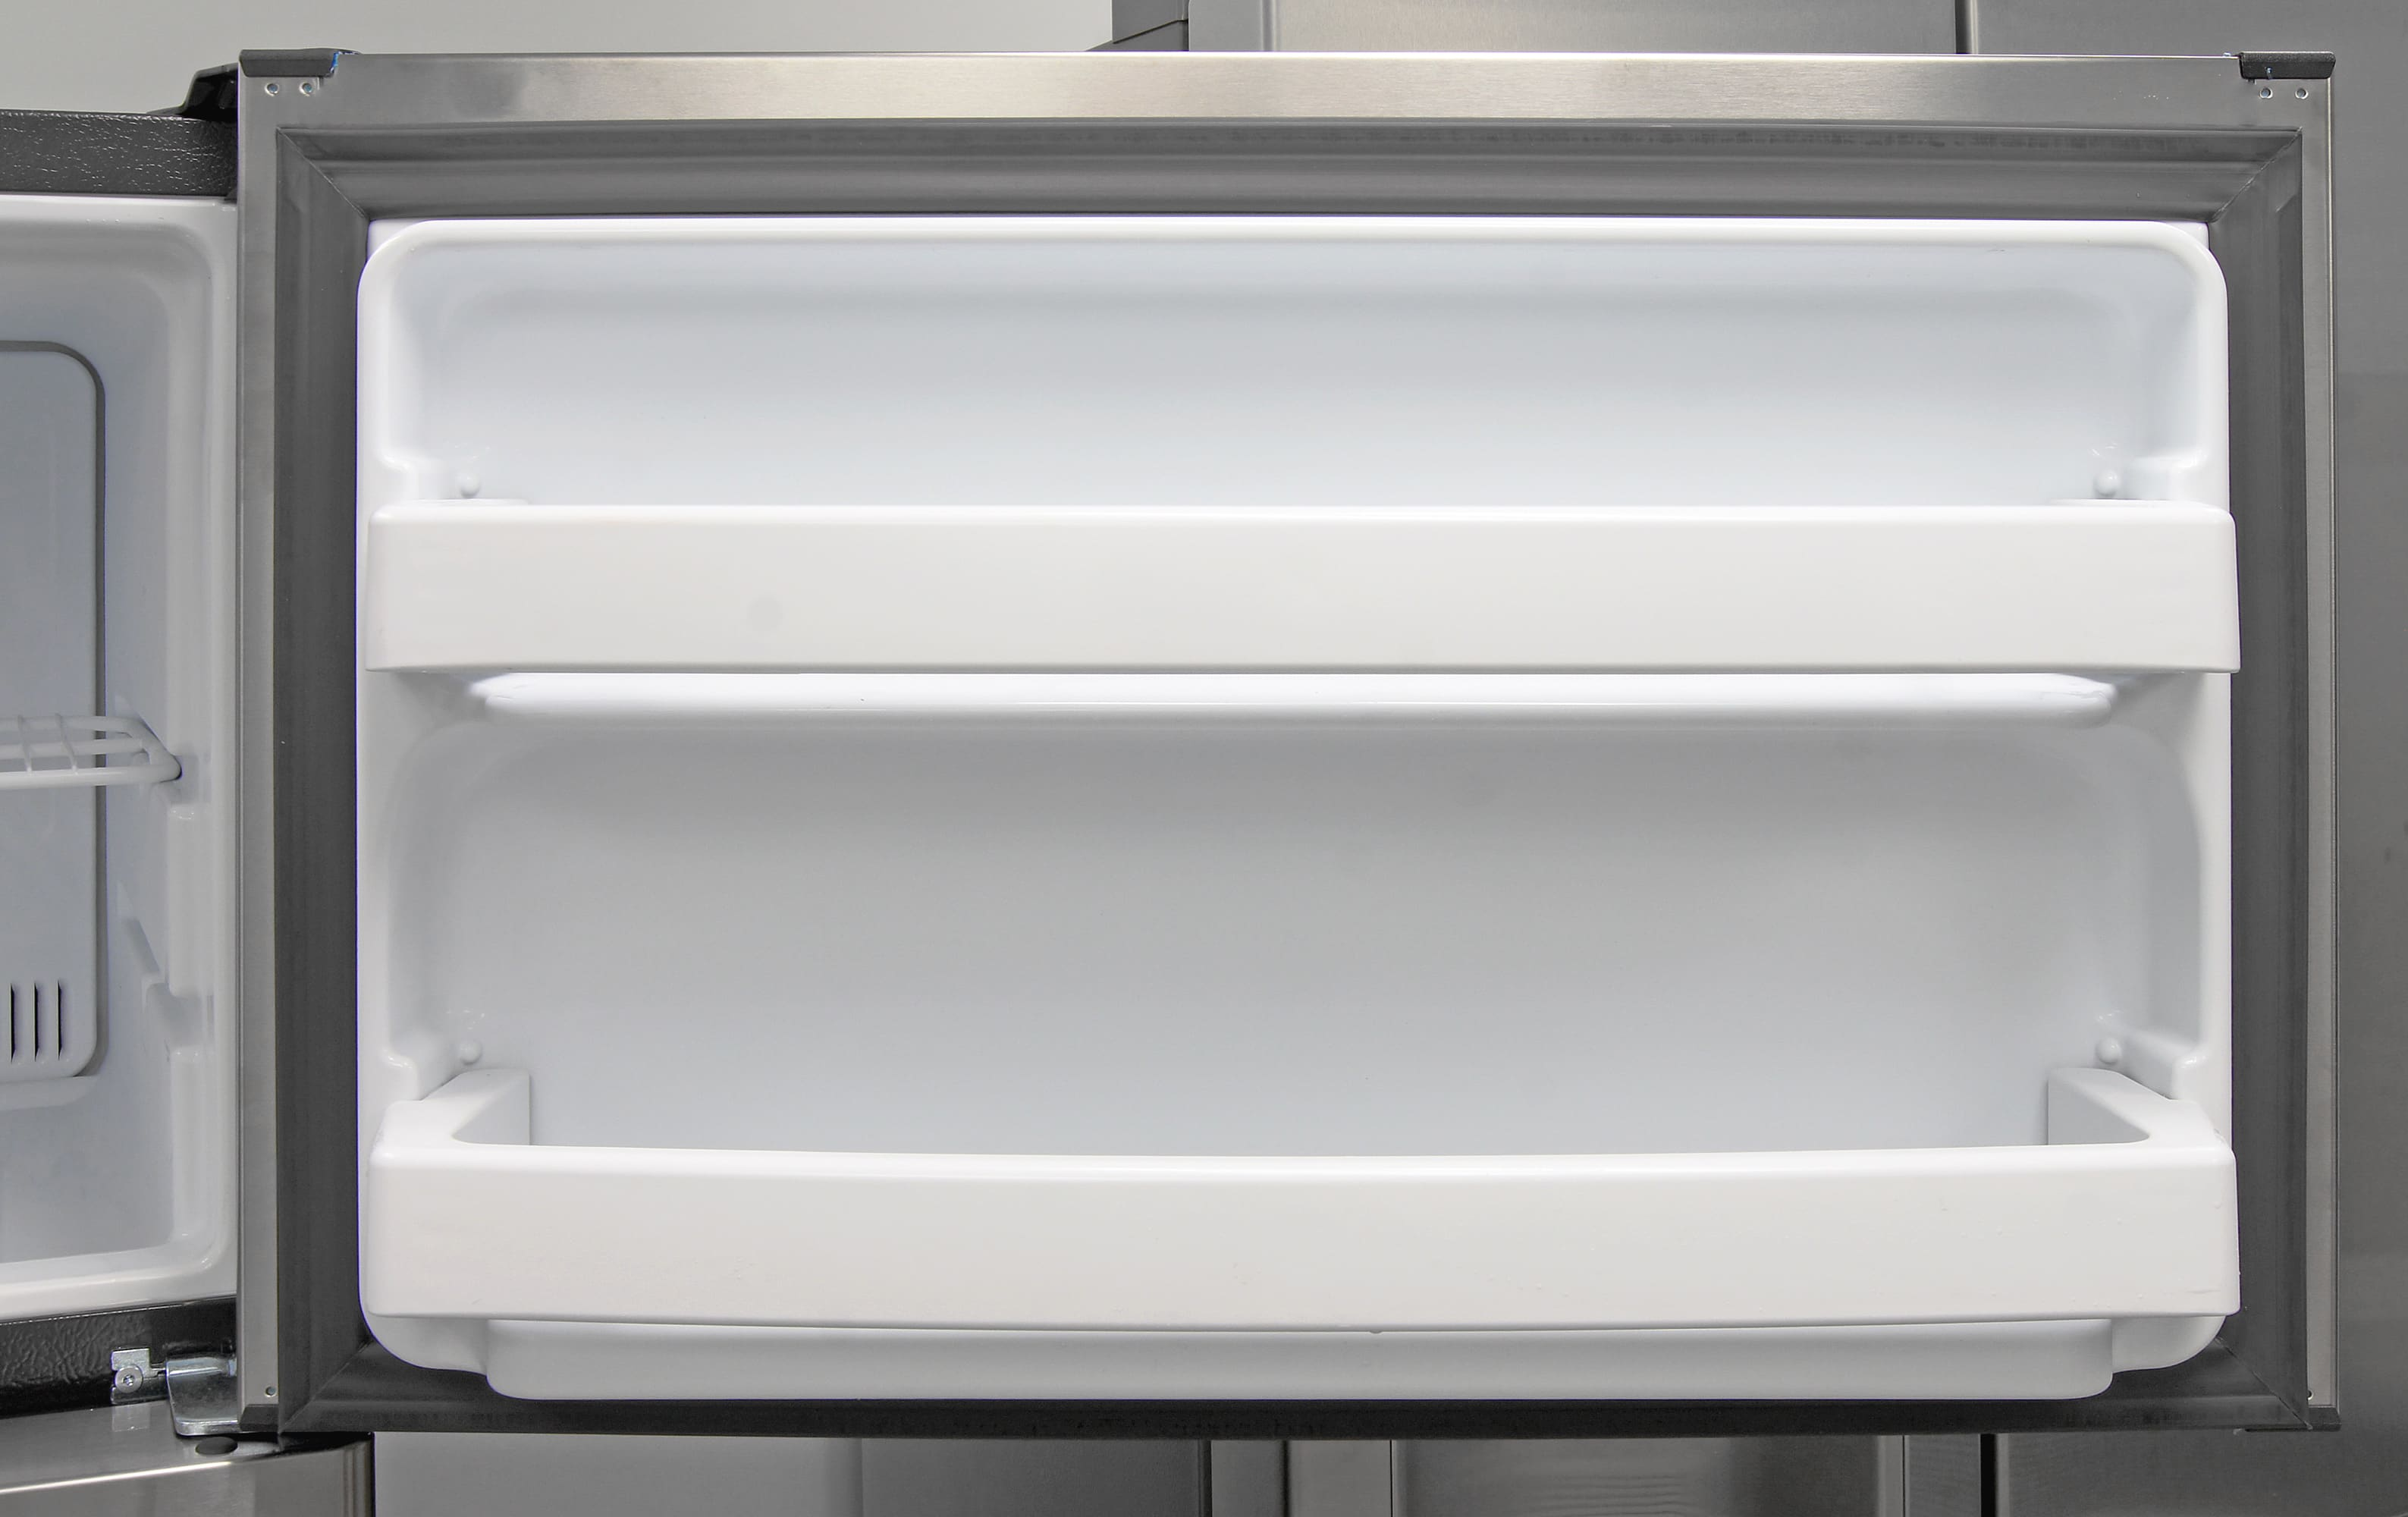 The GE GTE16GSHSS's freezer door has two fixed shelves for additional storage.